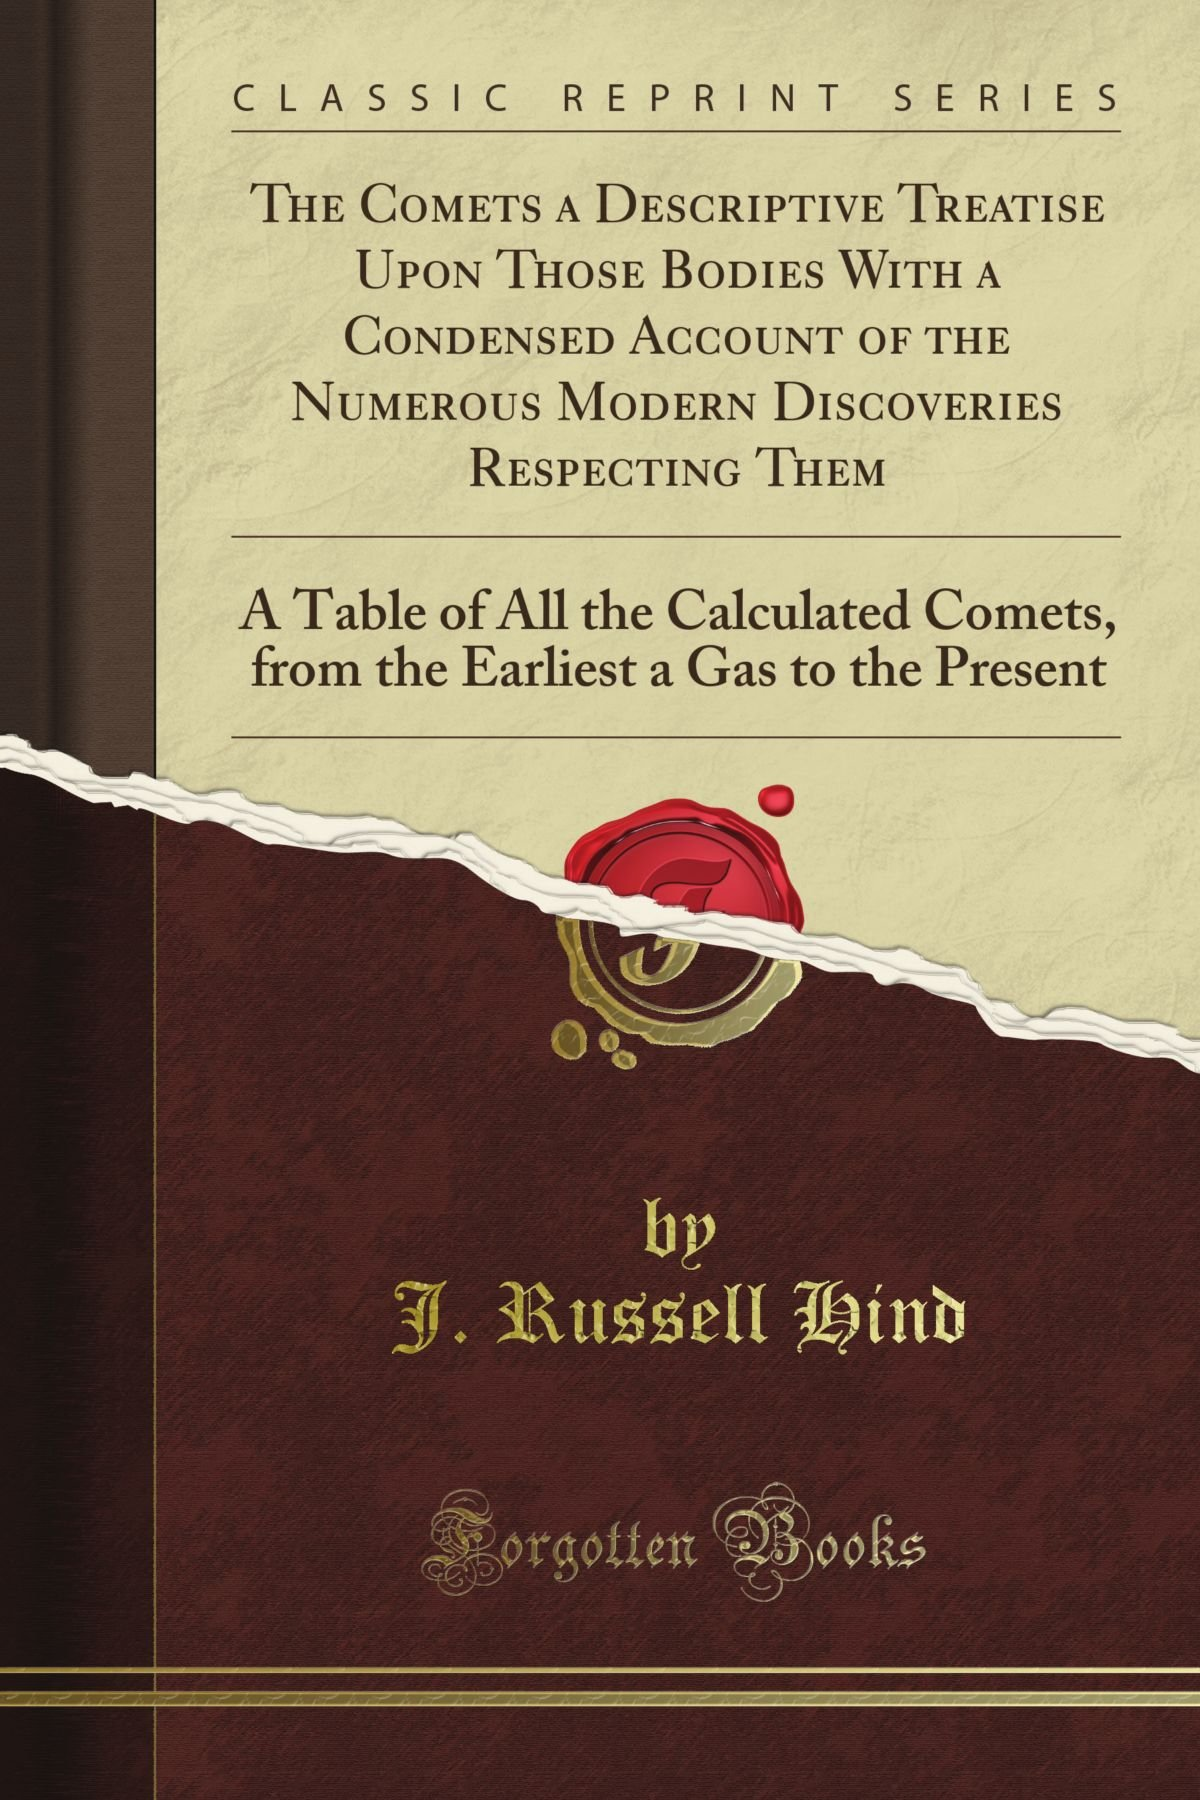 The Comets a Descriptive Treatise Upon Those Bodies With a Condensed Account of the Numerous Modern Discoveries Respecting Them: A Table of All the ... a Gas to the Present (Classic Reprint) pdf epub